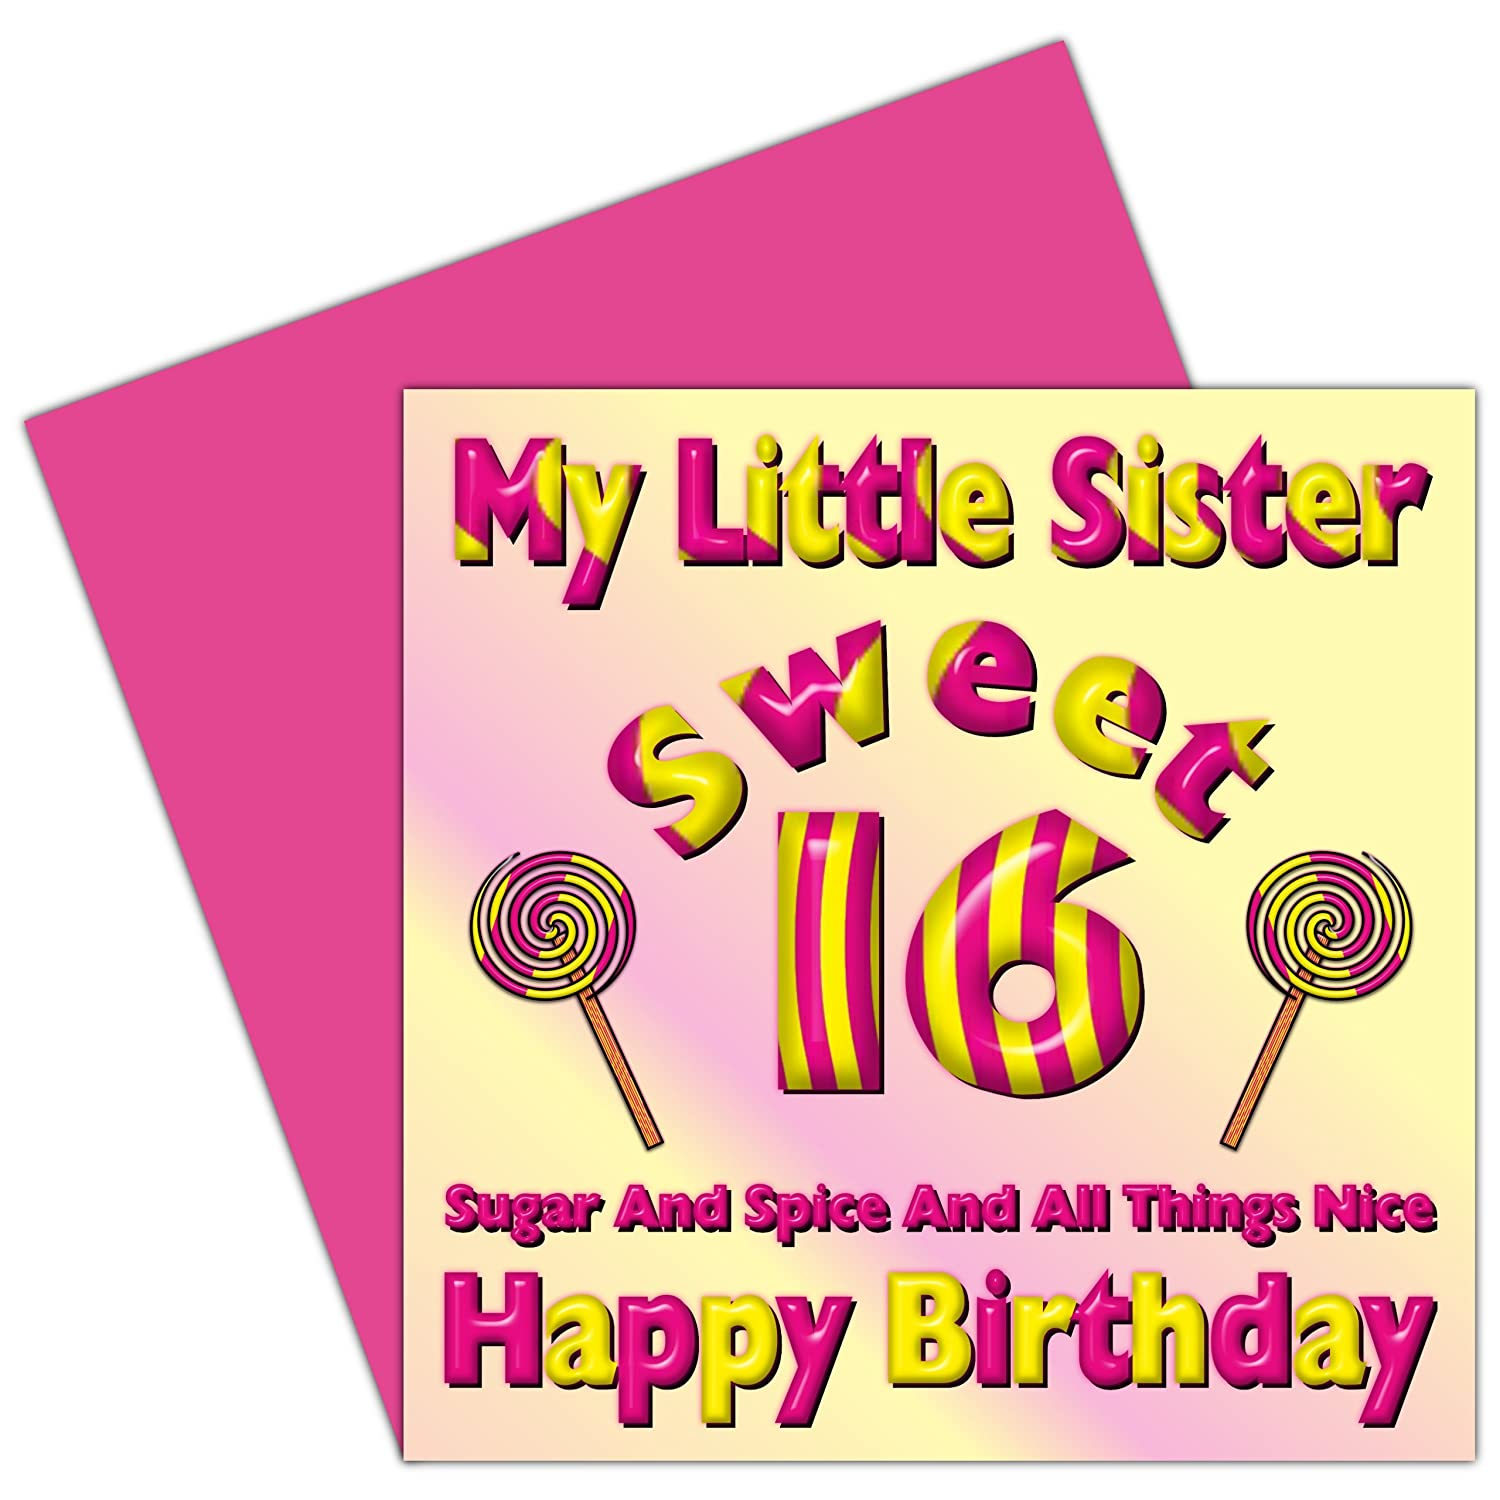 My Little Sister Sweet 16 Happy Birthday Card - 16th Birthday – Sixteen  Today – Candy Card Design